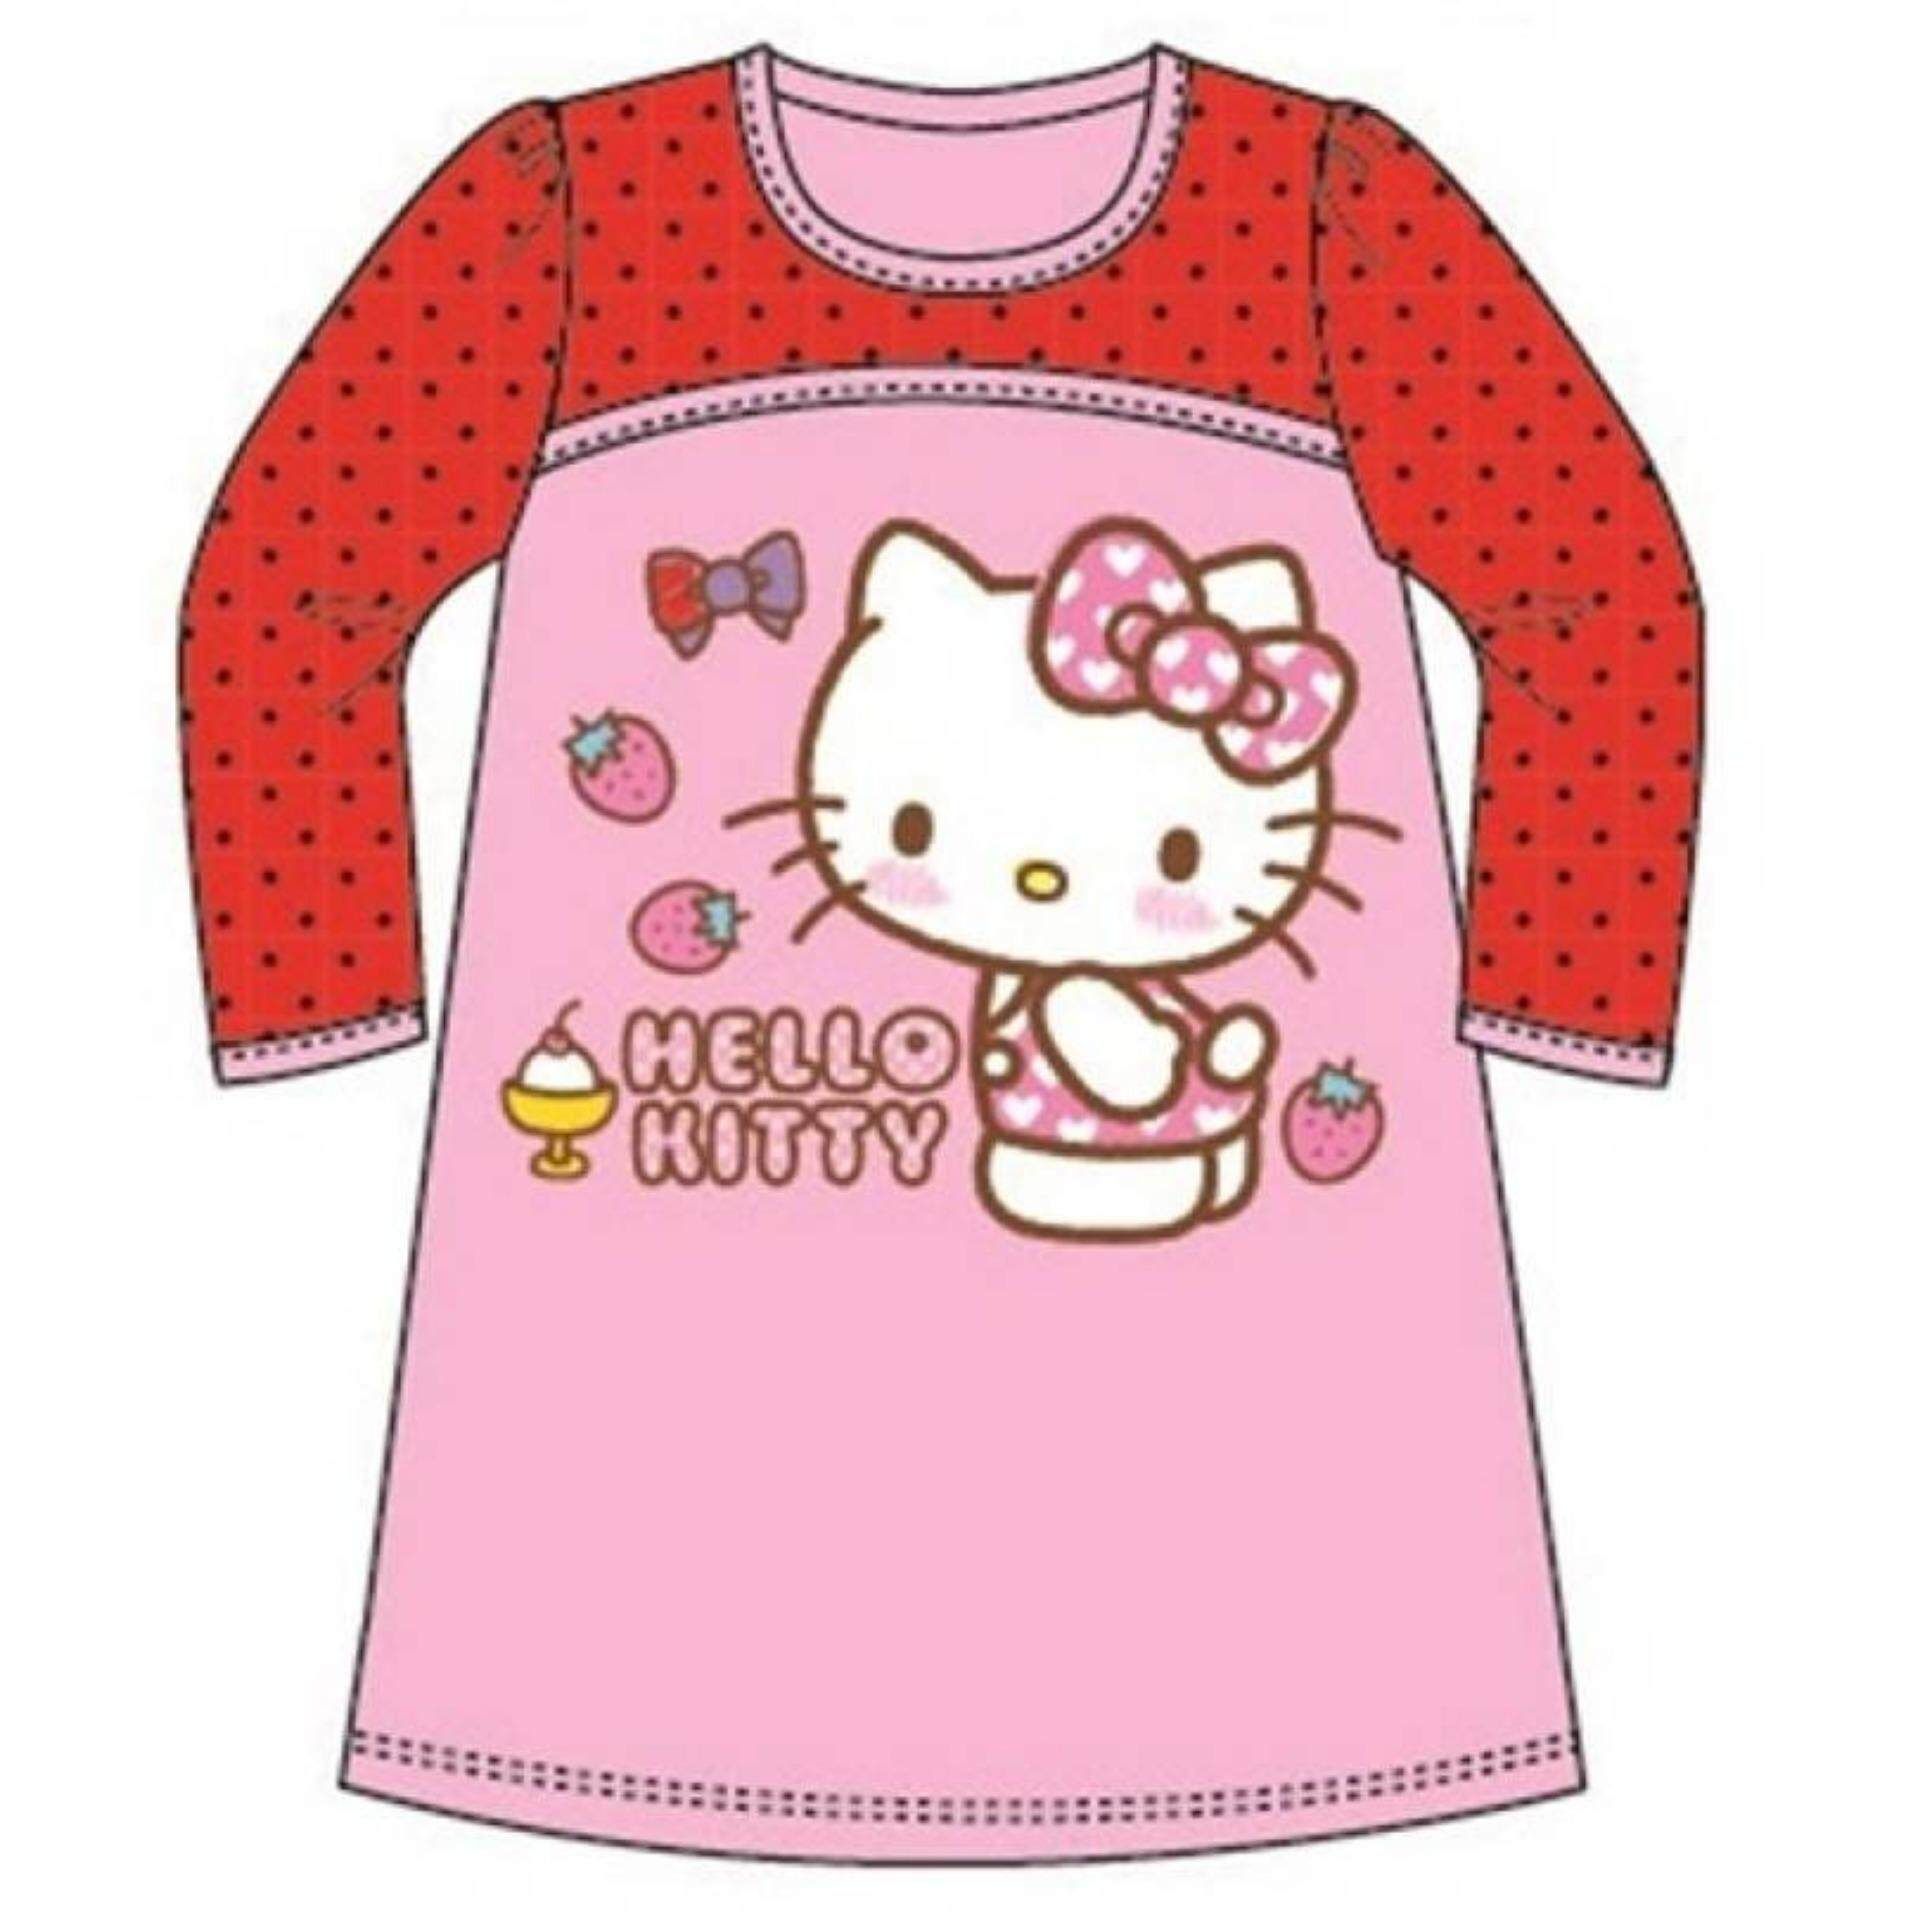 Sanrio Hello Kitty Long Sleeve Dress 100% Cotton 1yrs to 5yrs - Pink and Red Colour